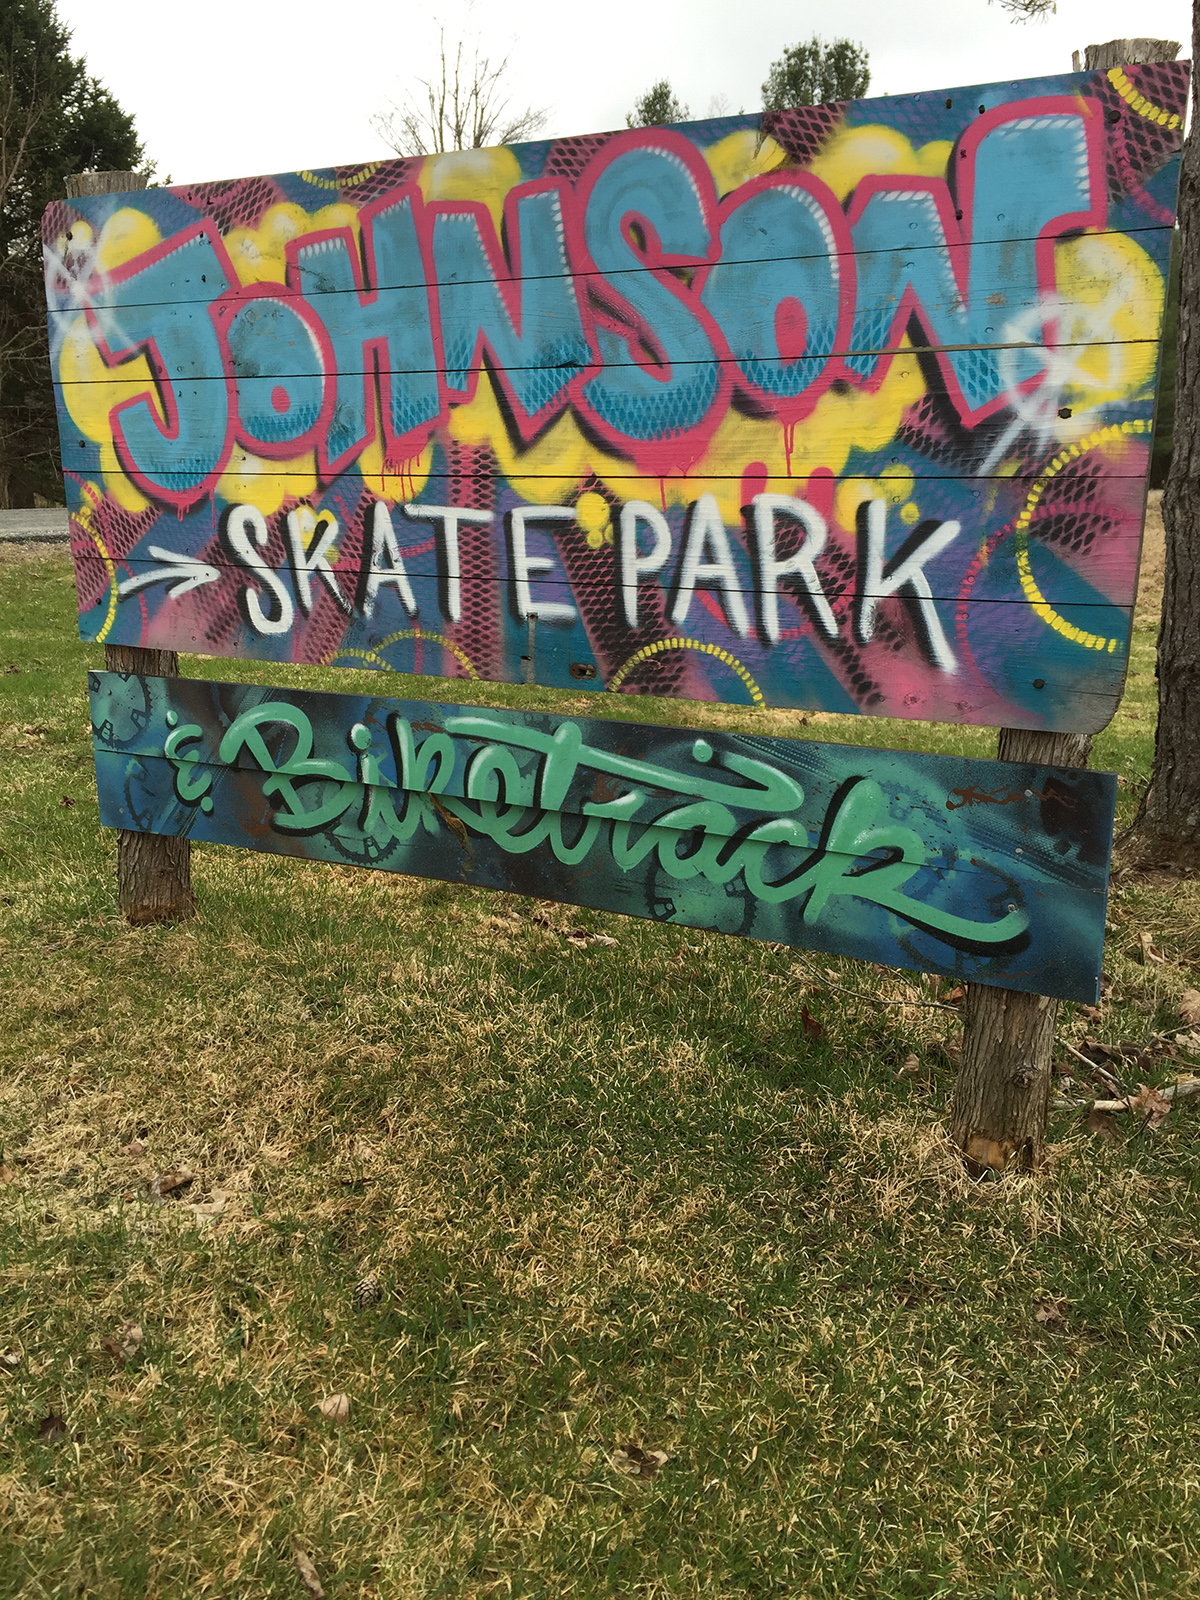 Johnson Skatepark